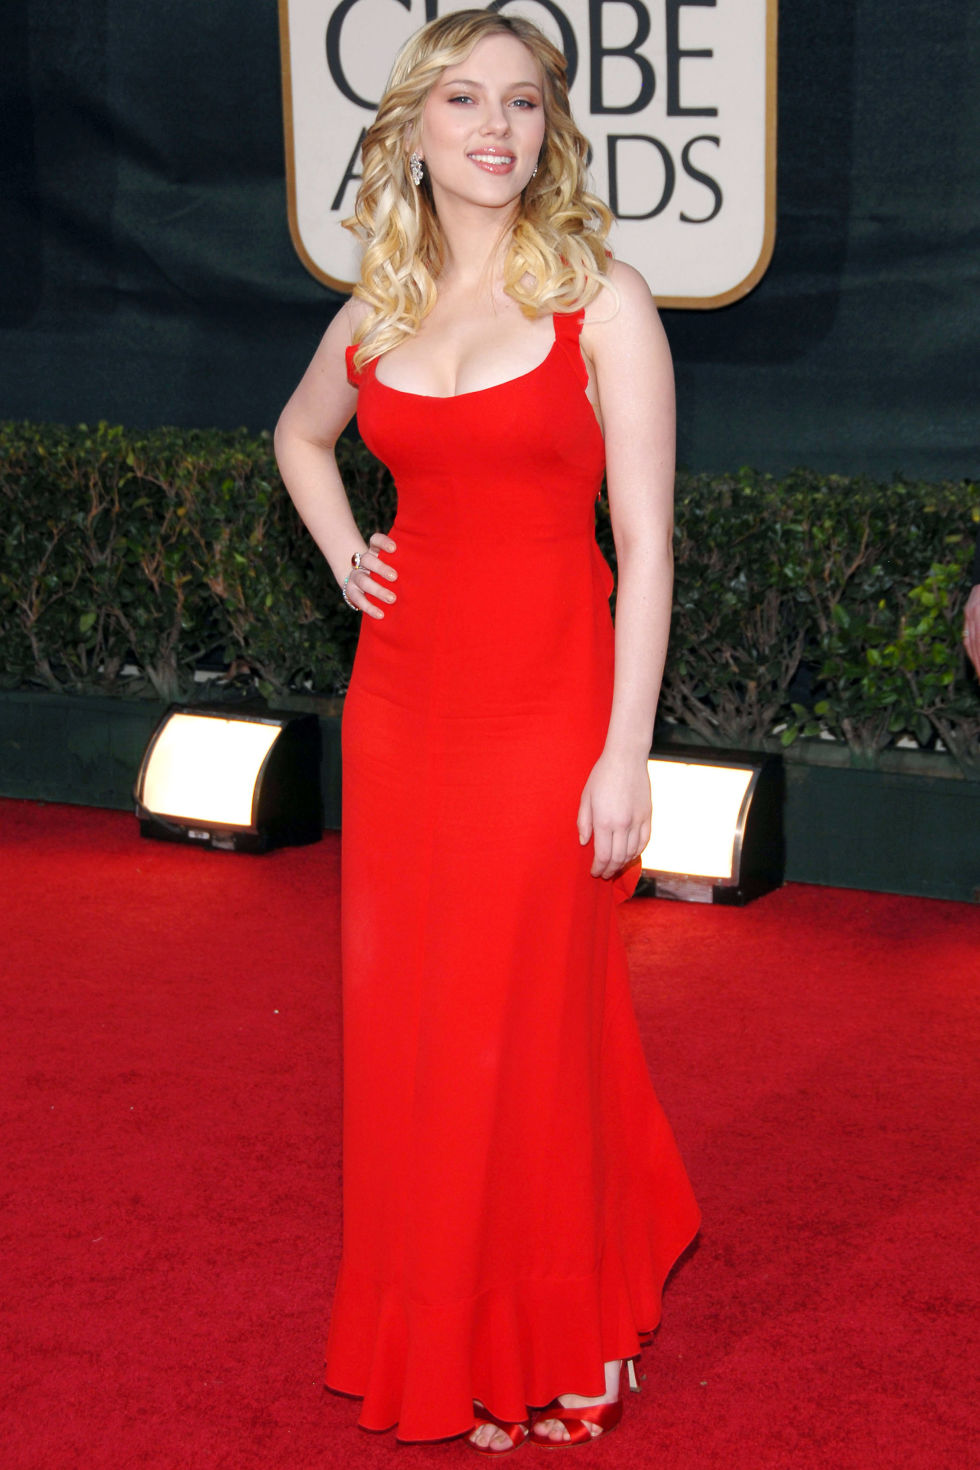 Scarlett Johansson, in 2006, wearing Valentino, the epitome of the classic red Valentino gown.